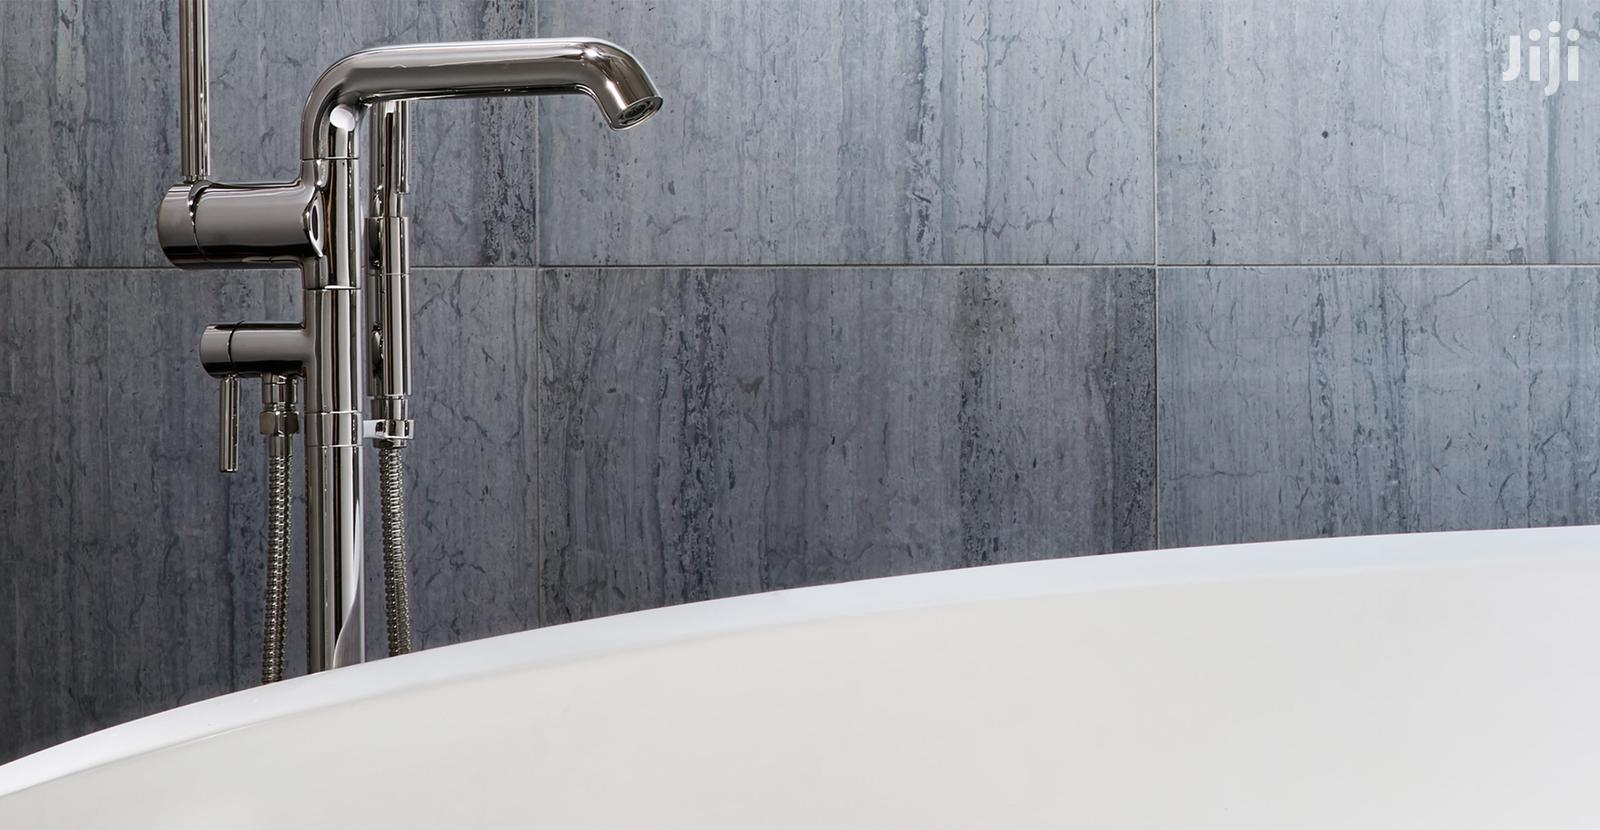 Professional Plumber-hire A Recommended Plumber For Repairs & More. | Repair Services for sale in Nairobi Central, Nairobi, Kenya